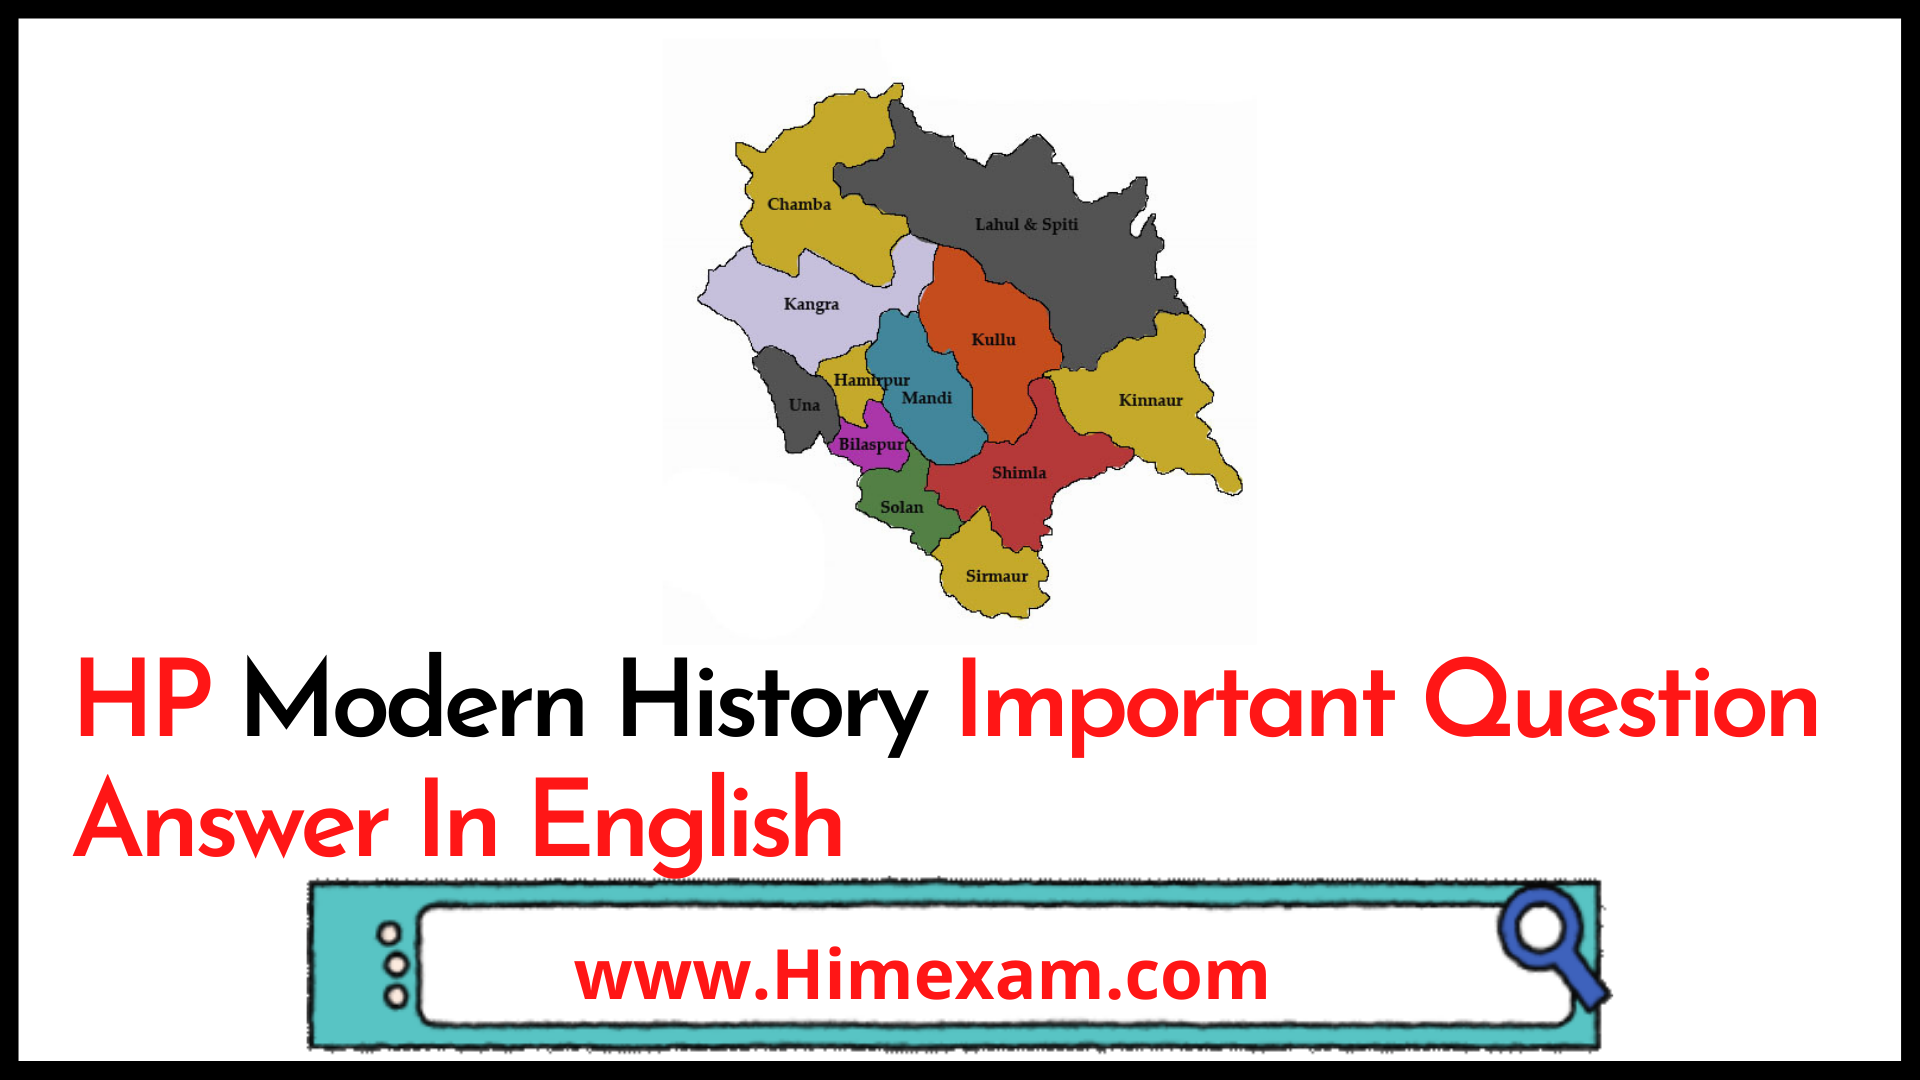 HP Modern History Important Question Answer In English